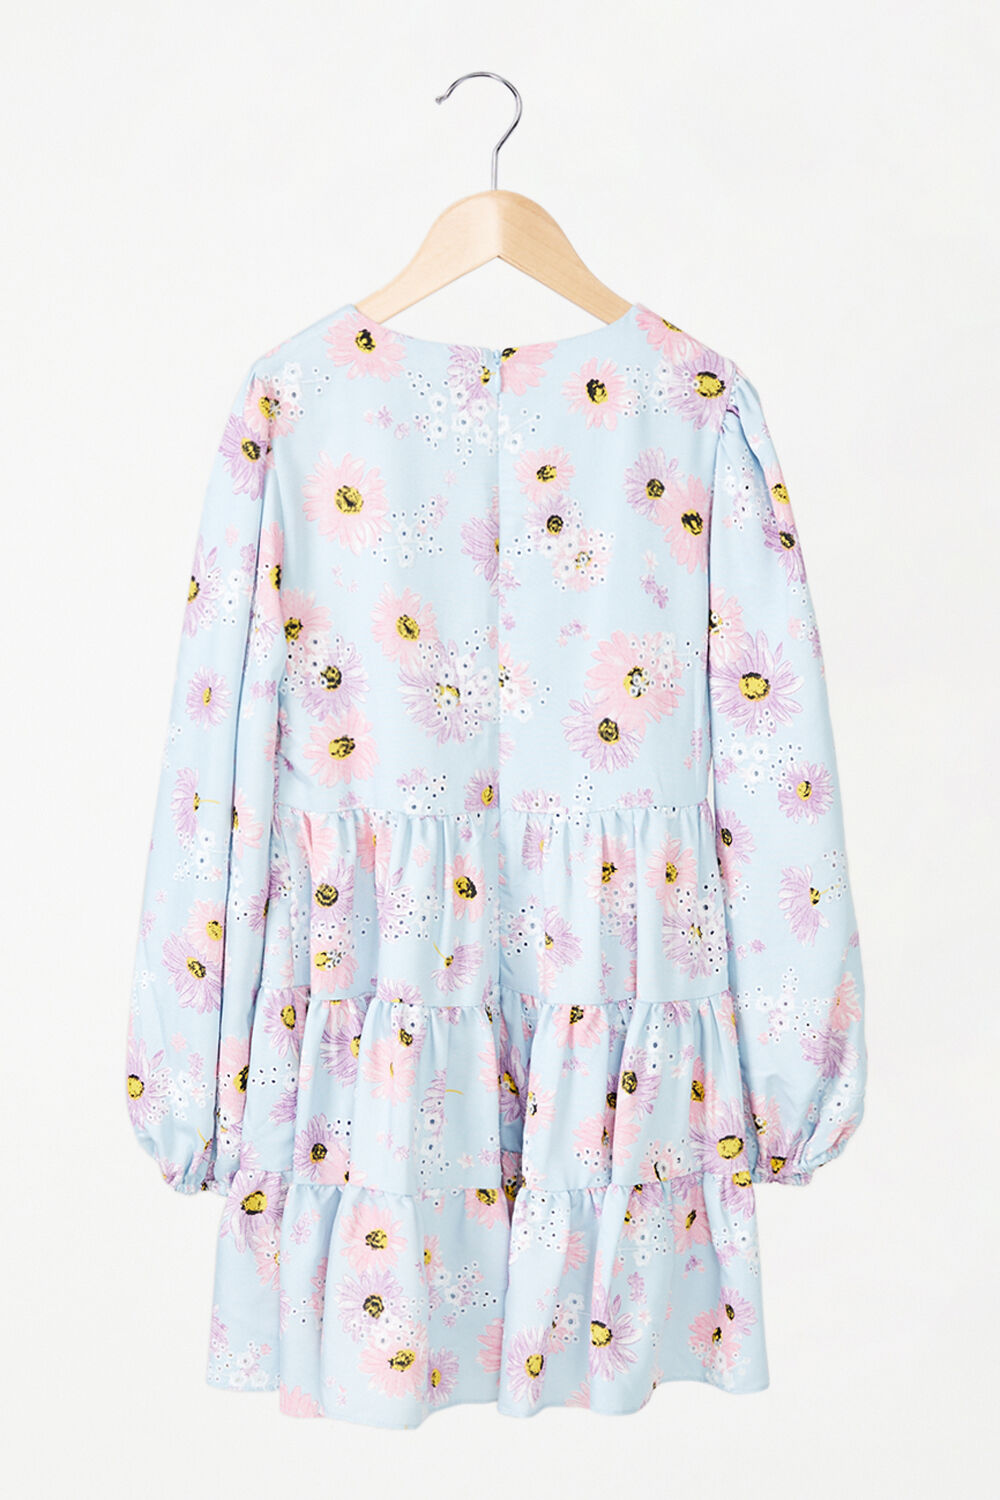 BABY GIRL ELLA BRODERIE DRESS in colour CLEMATIS BLUE